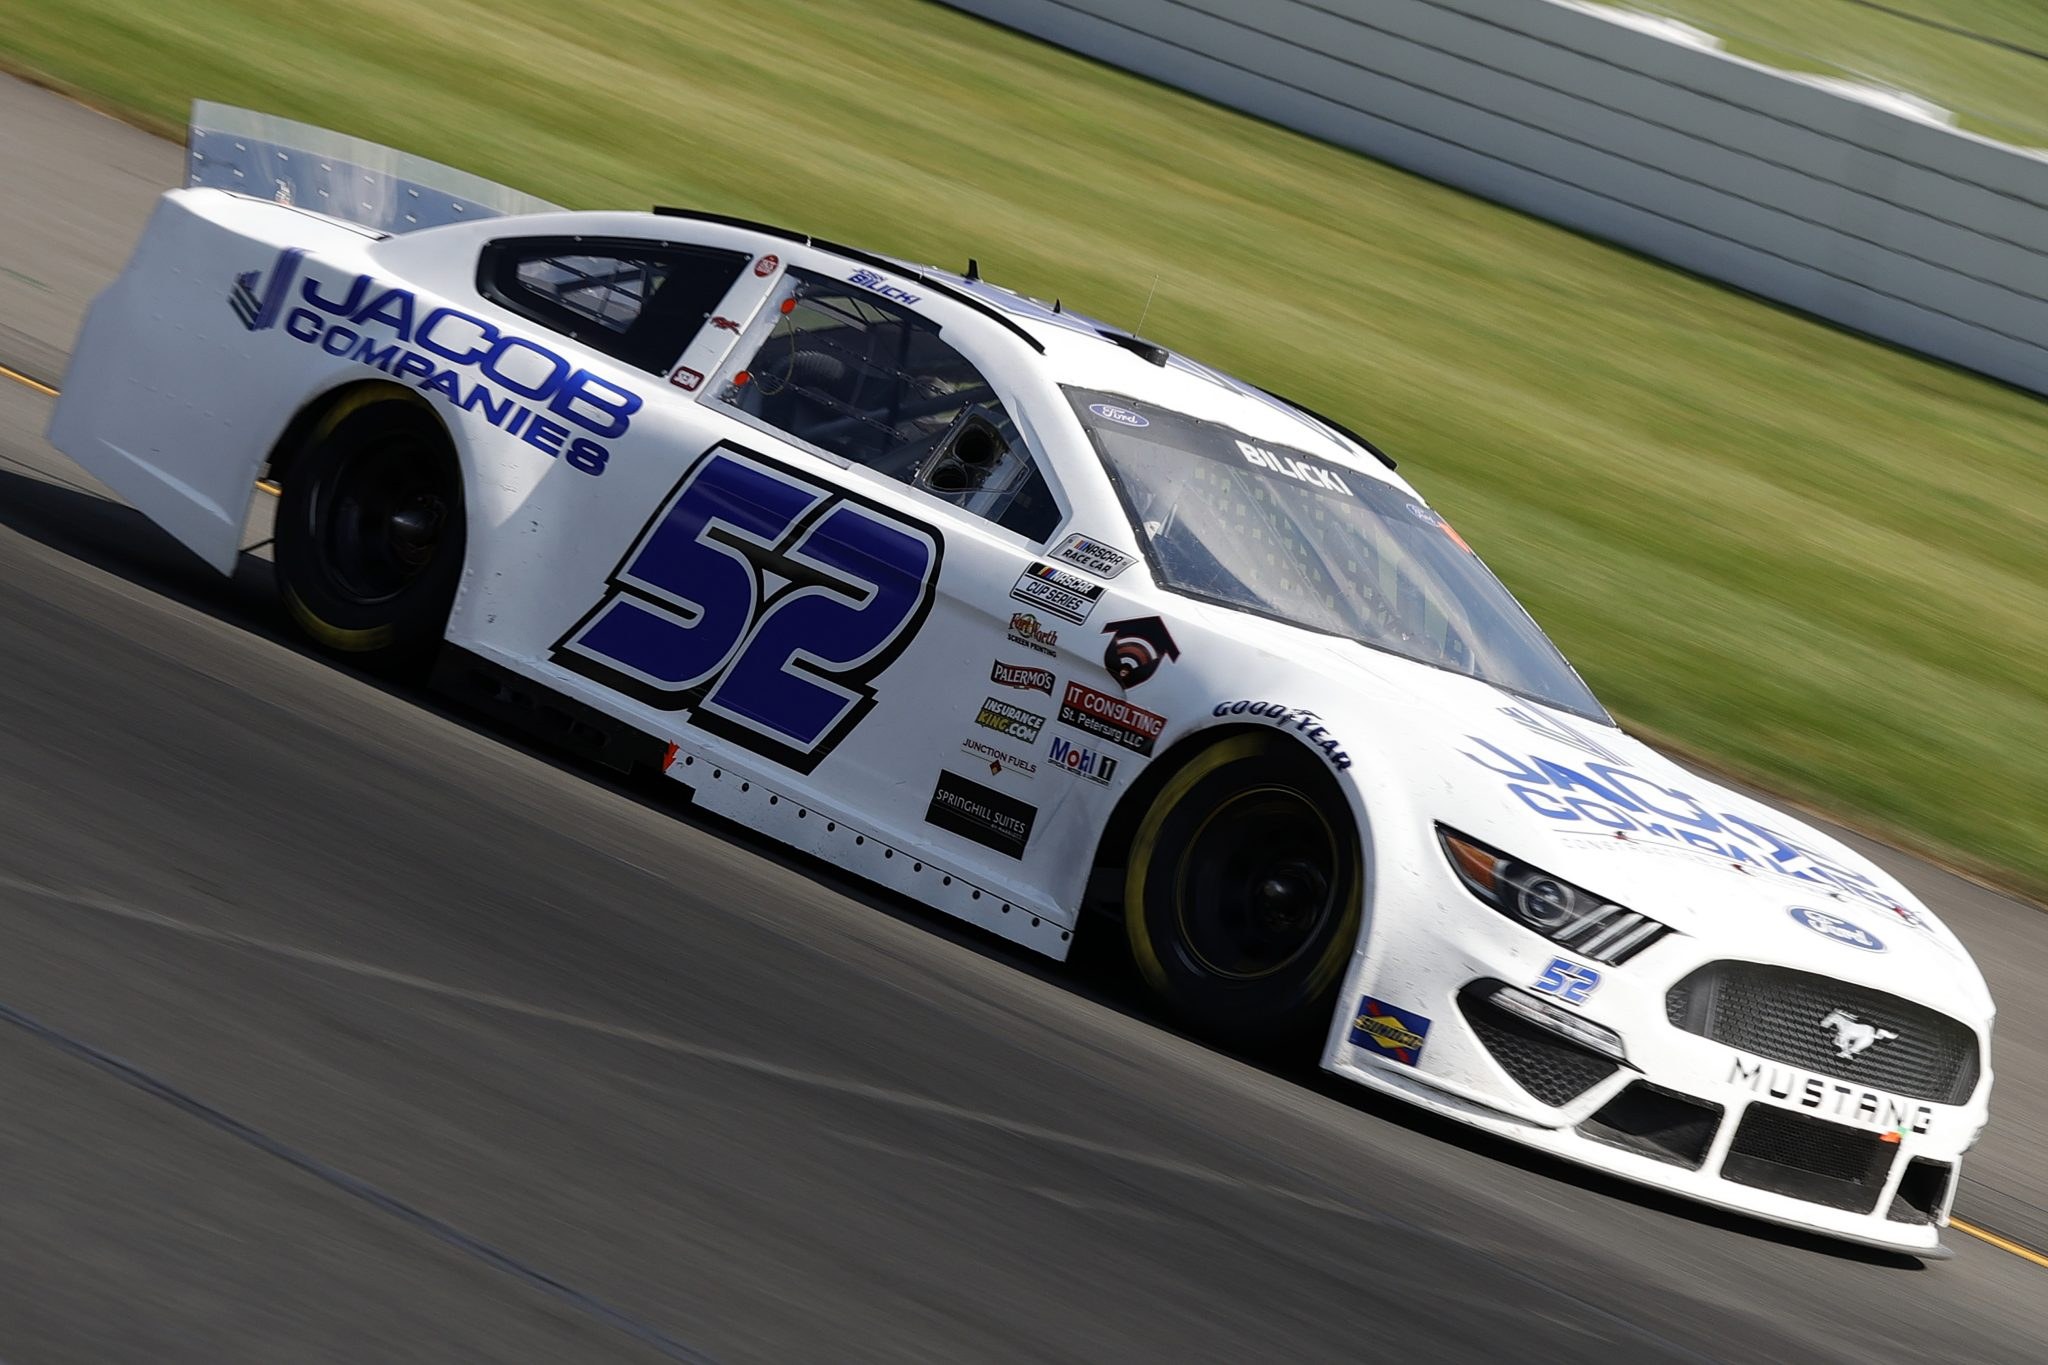 LONG POND, PENNSYLVANIA - JUNE 27: Josh Bilicki, driver of the #52 Jacob Companies Ford, drives during the NASCAR Cup Series Explore the Pocono Mountains 350 at Pocono Raceway on June 27, 2021 in Long Pond, Pennsylvania. (Photo by Tim Nwachukwu/Getty Images) | Getty Images